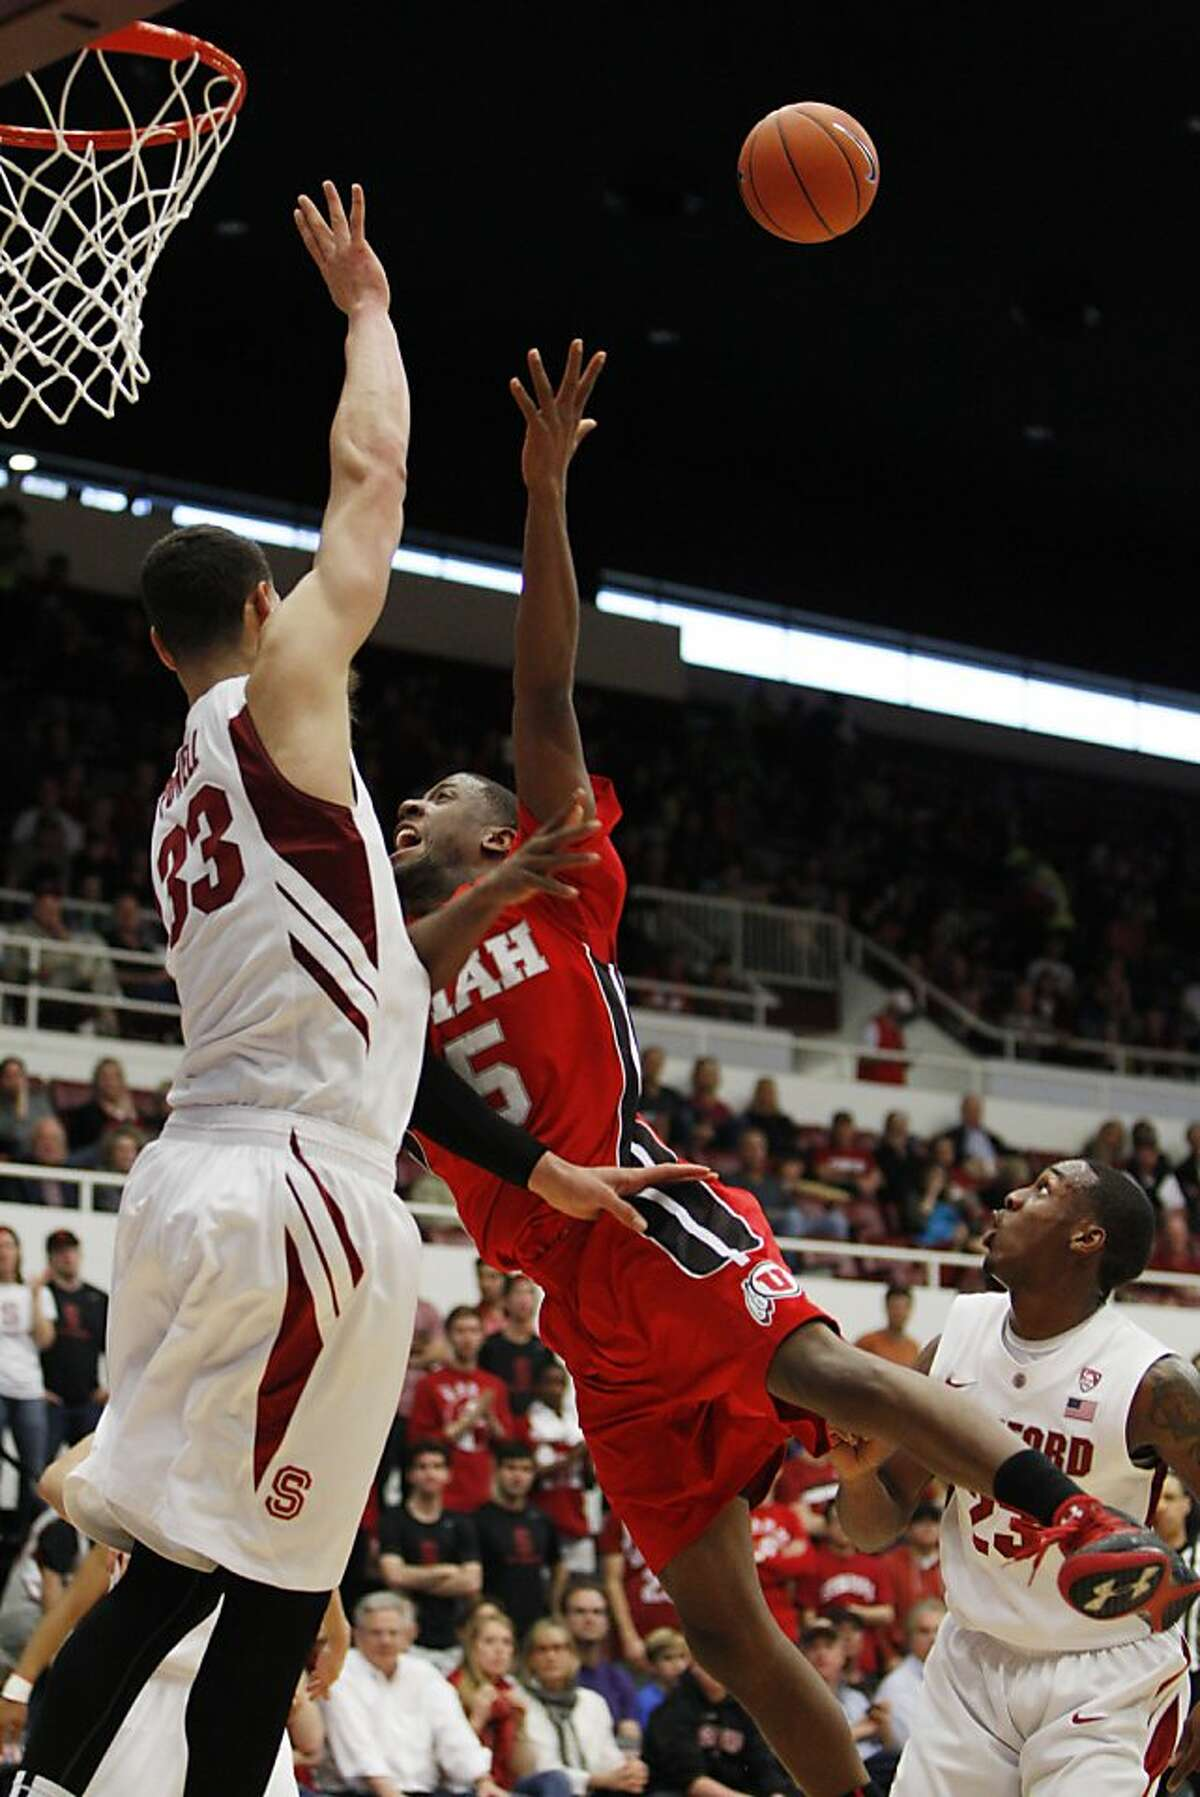 Dwight Powell, left, and Gabriel Harris, right, defend against Utah's Jarred DuBois in the first half. The Stanford Cardinal played the Utah Utes at Maples Pavilion in Stanford, Calif, on Sunday, March 3, 2013, defeating the Utes 84-66.